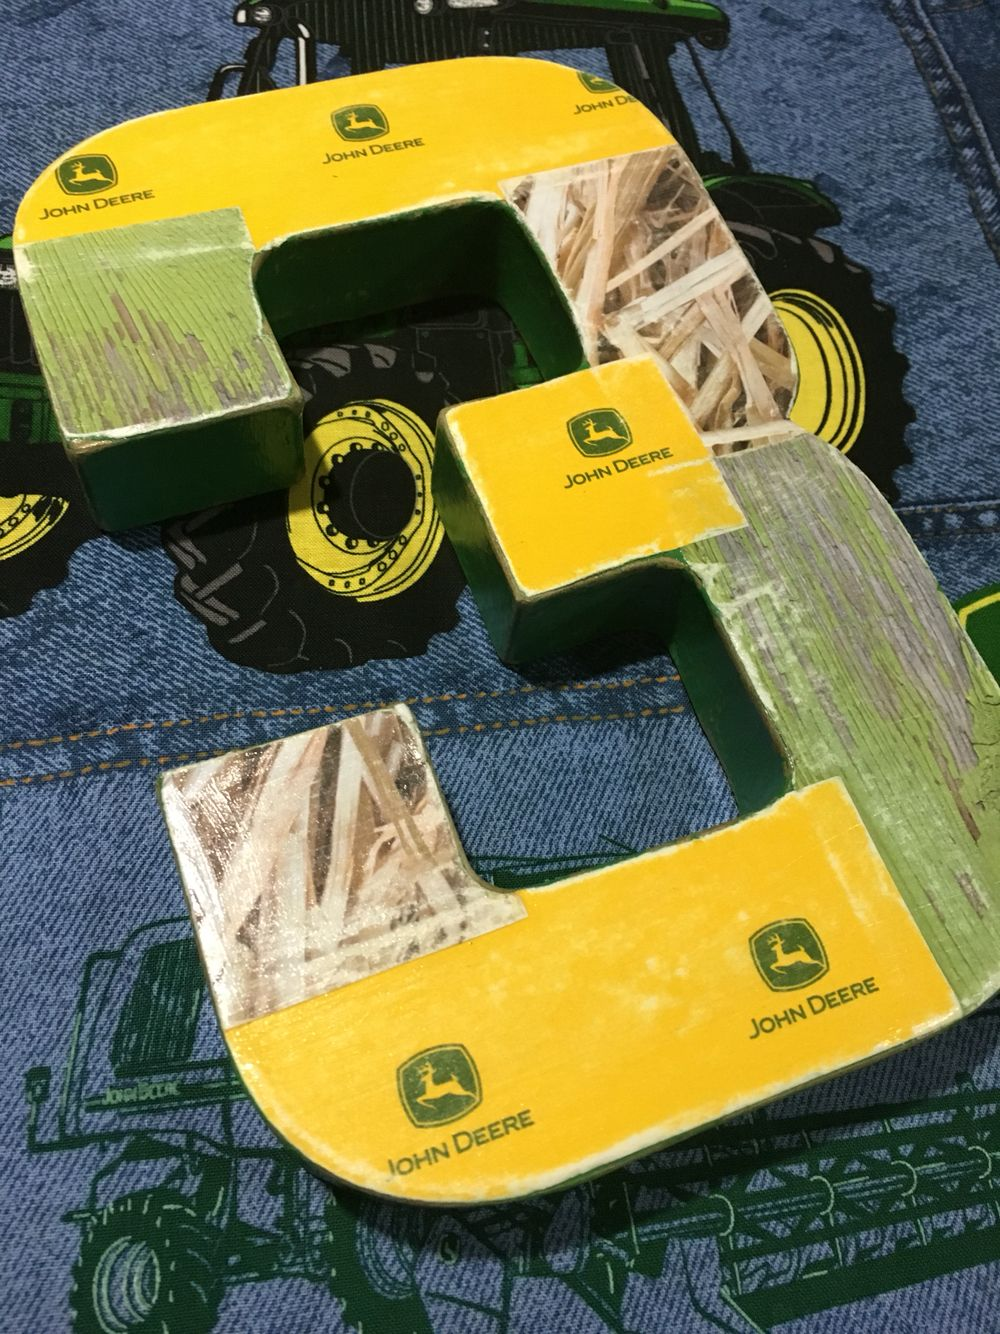 {cardboard #3 covered with scrapbook paper for a table decoration} • John Deere birthday • John Deere theme party • kids birthday • boy birthday party ideas • green and yellow party colors • tractor birthday • John Deere •